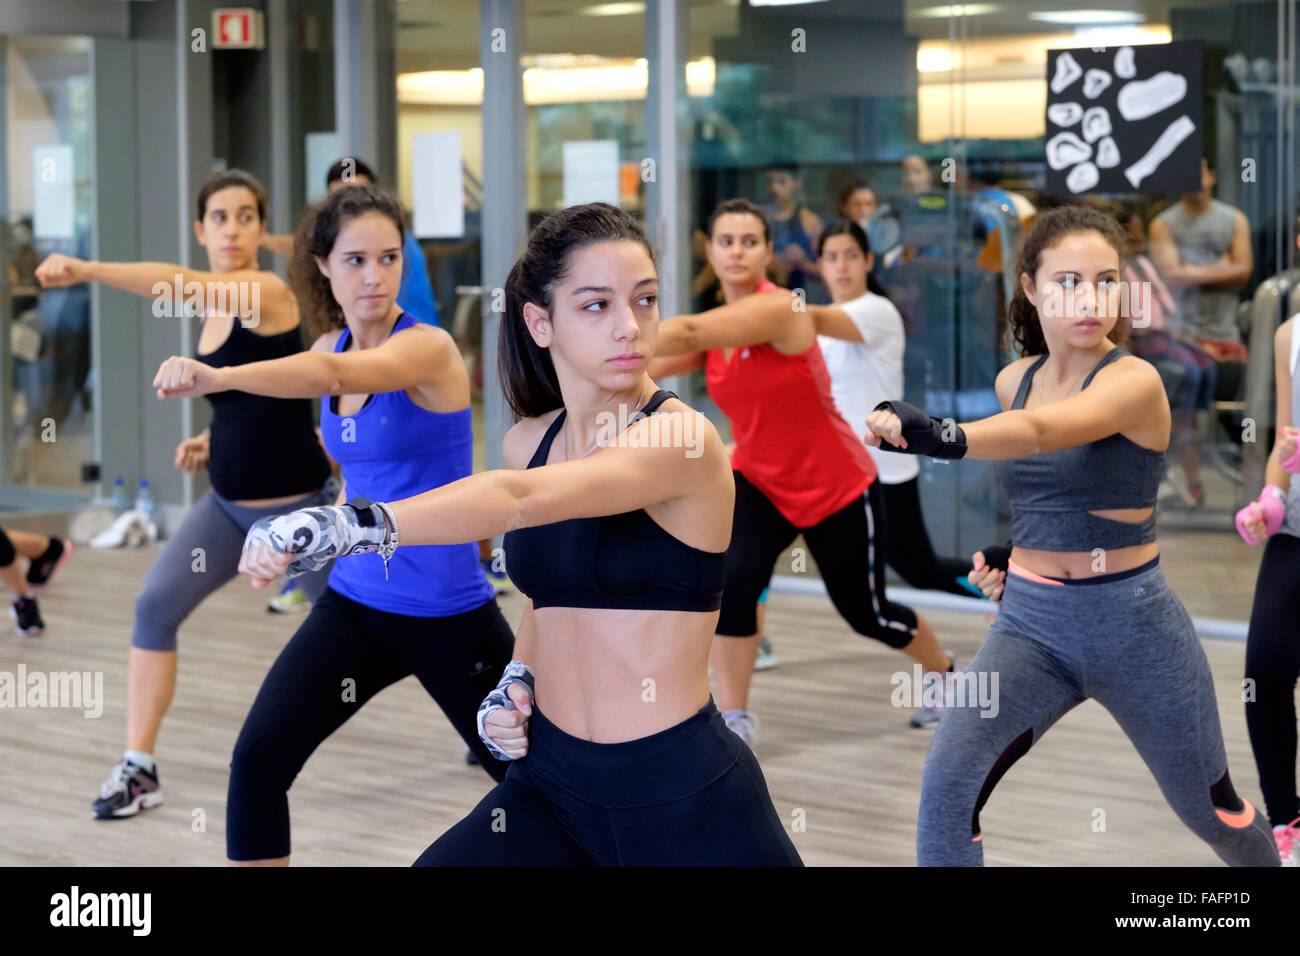 Young Women During Body Combat Fitness Class At The Gym